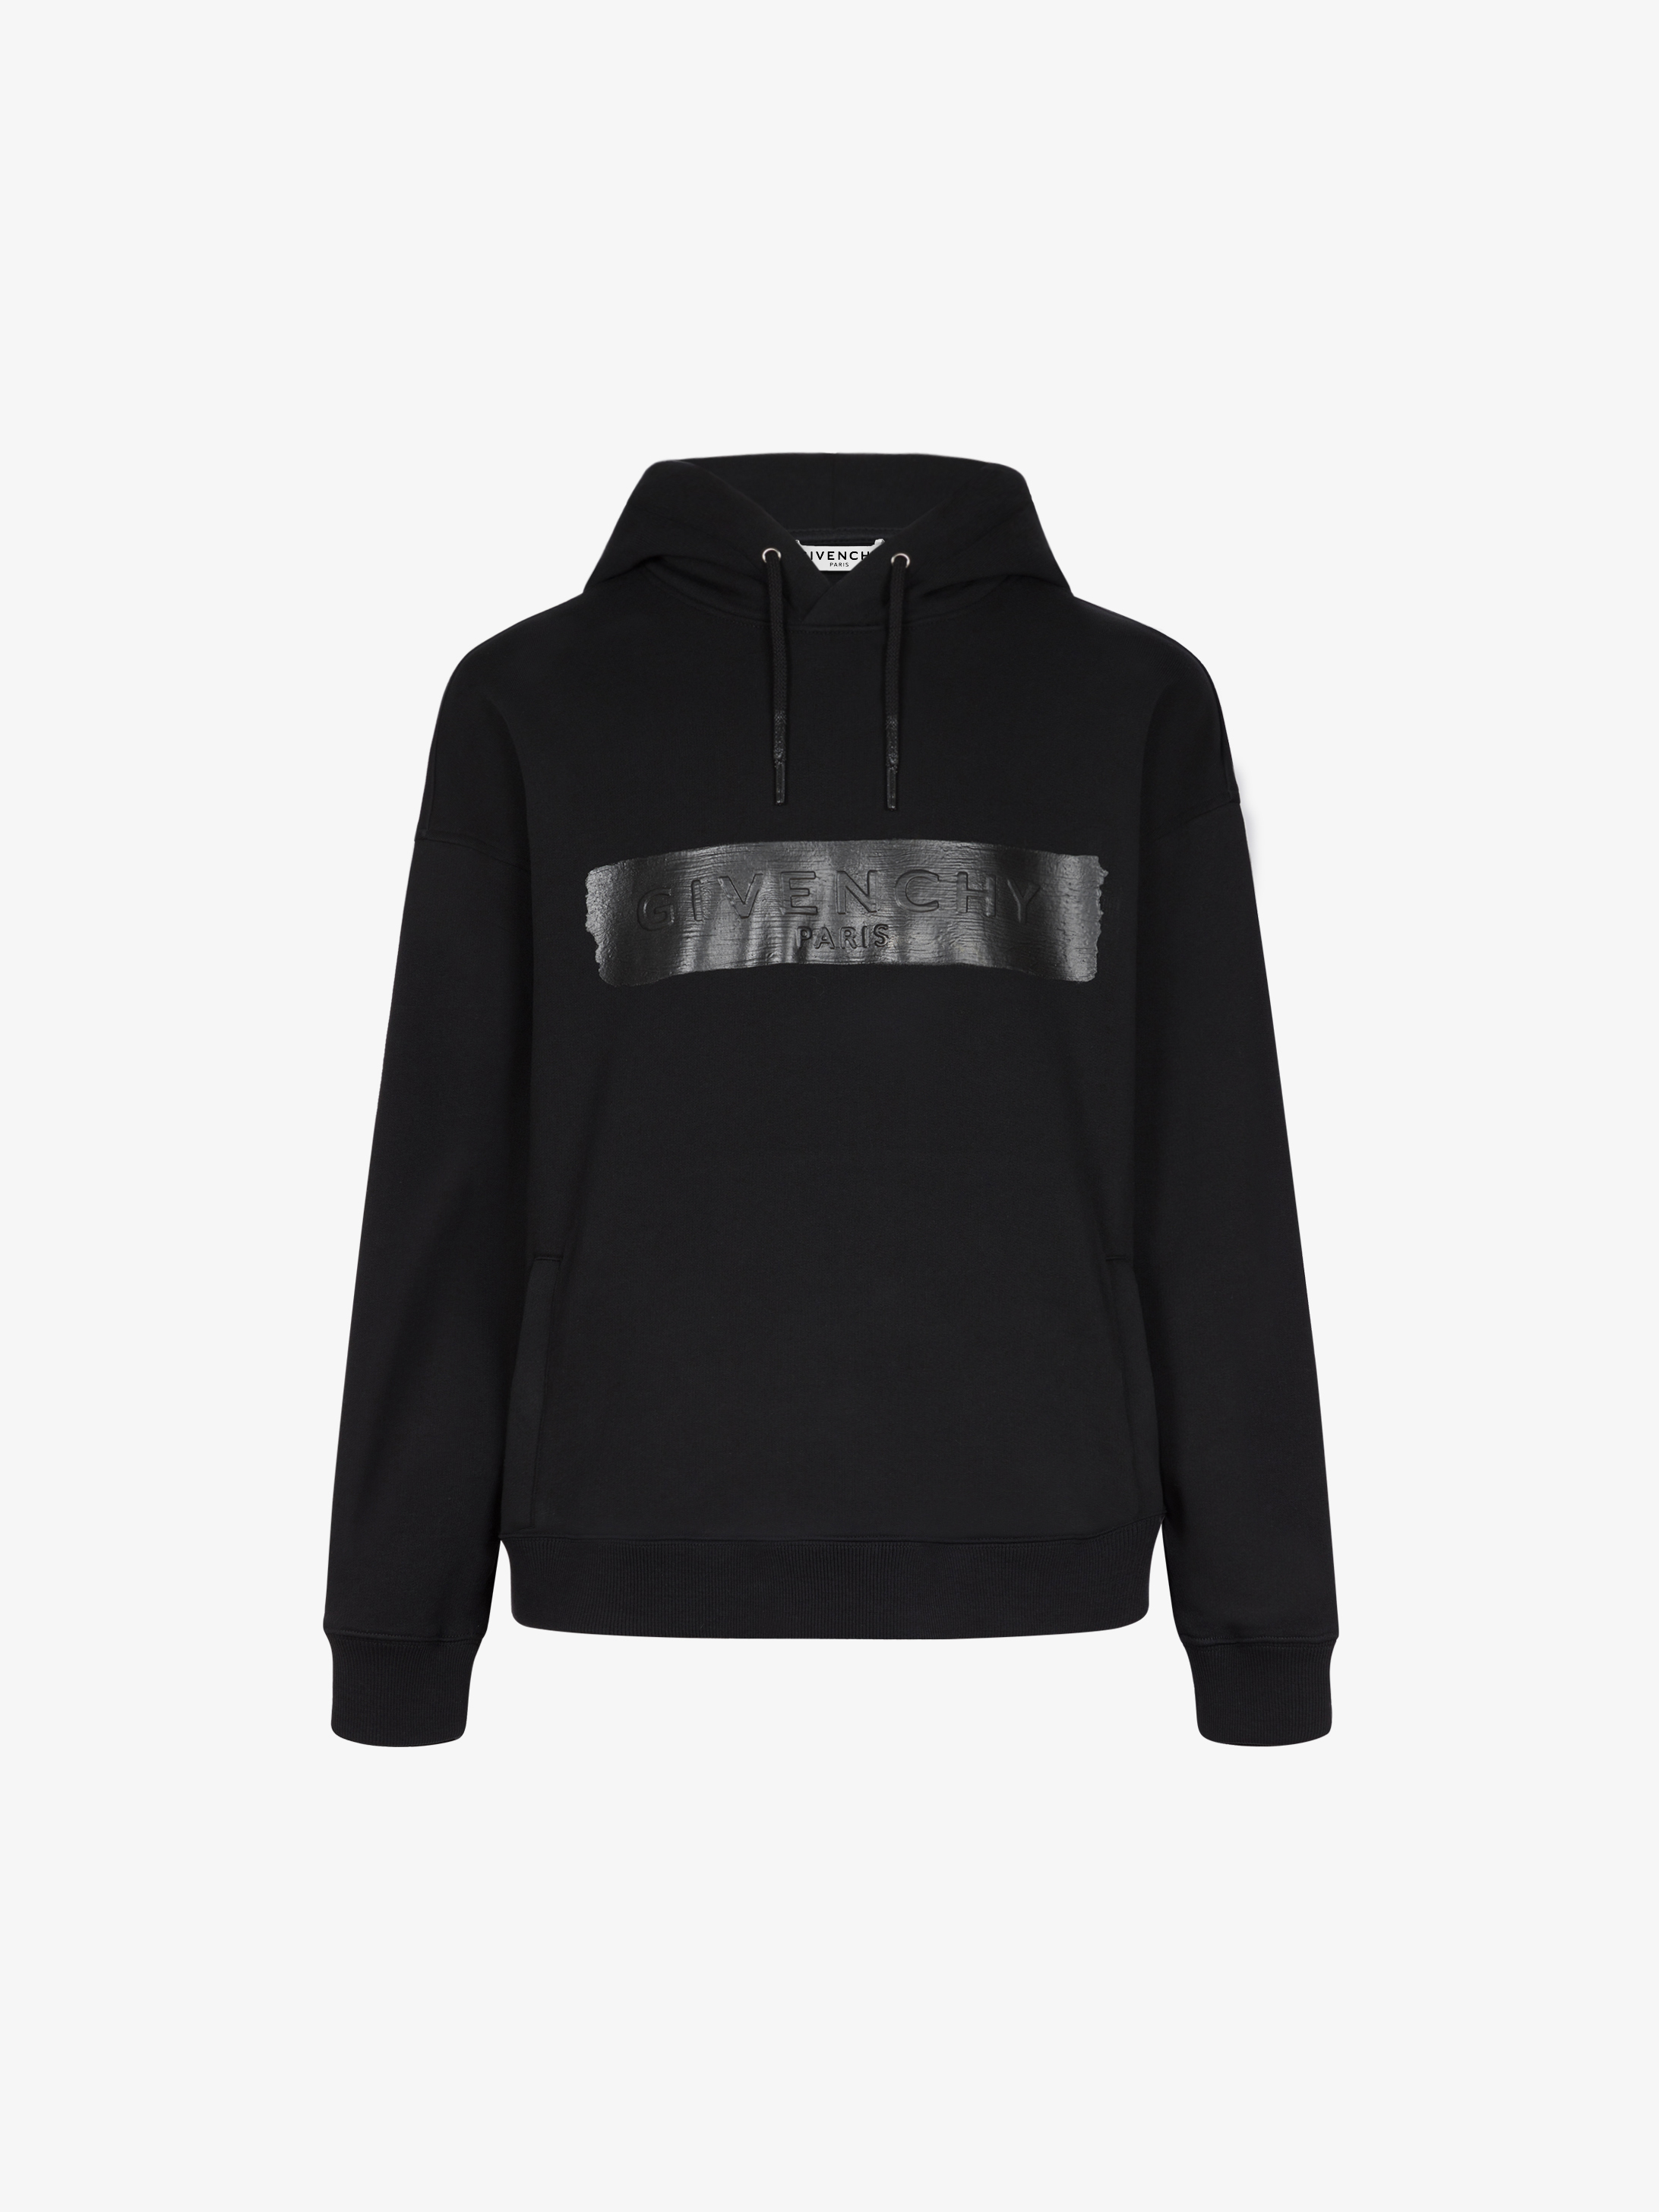 GIVENCHY hoodie with band